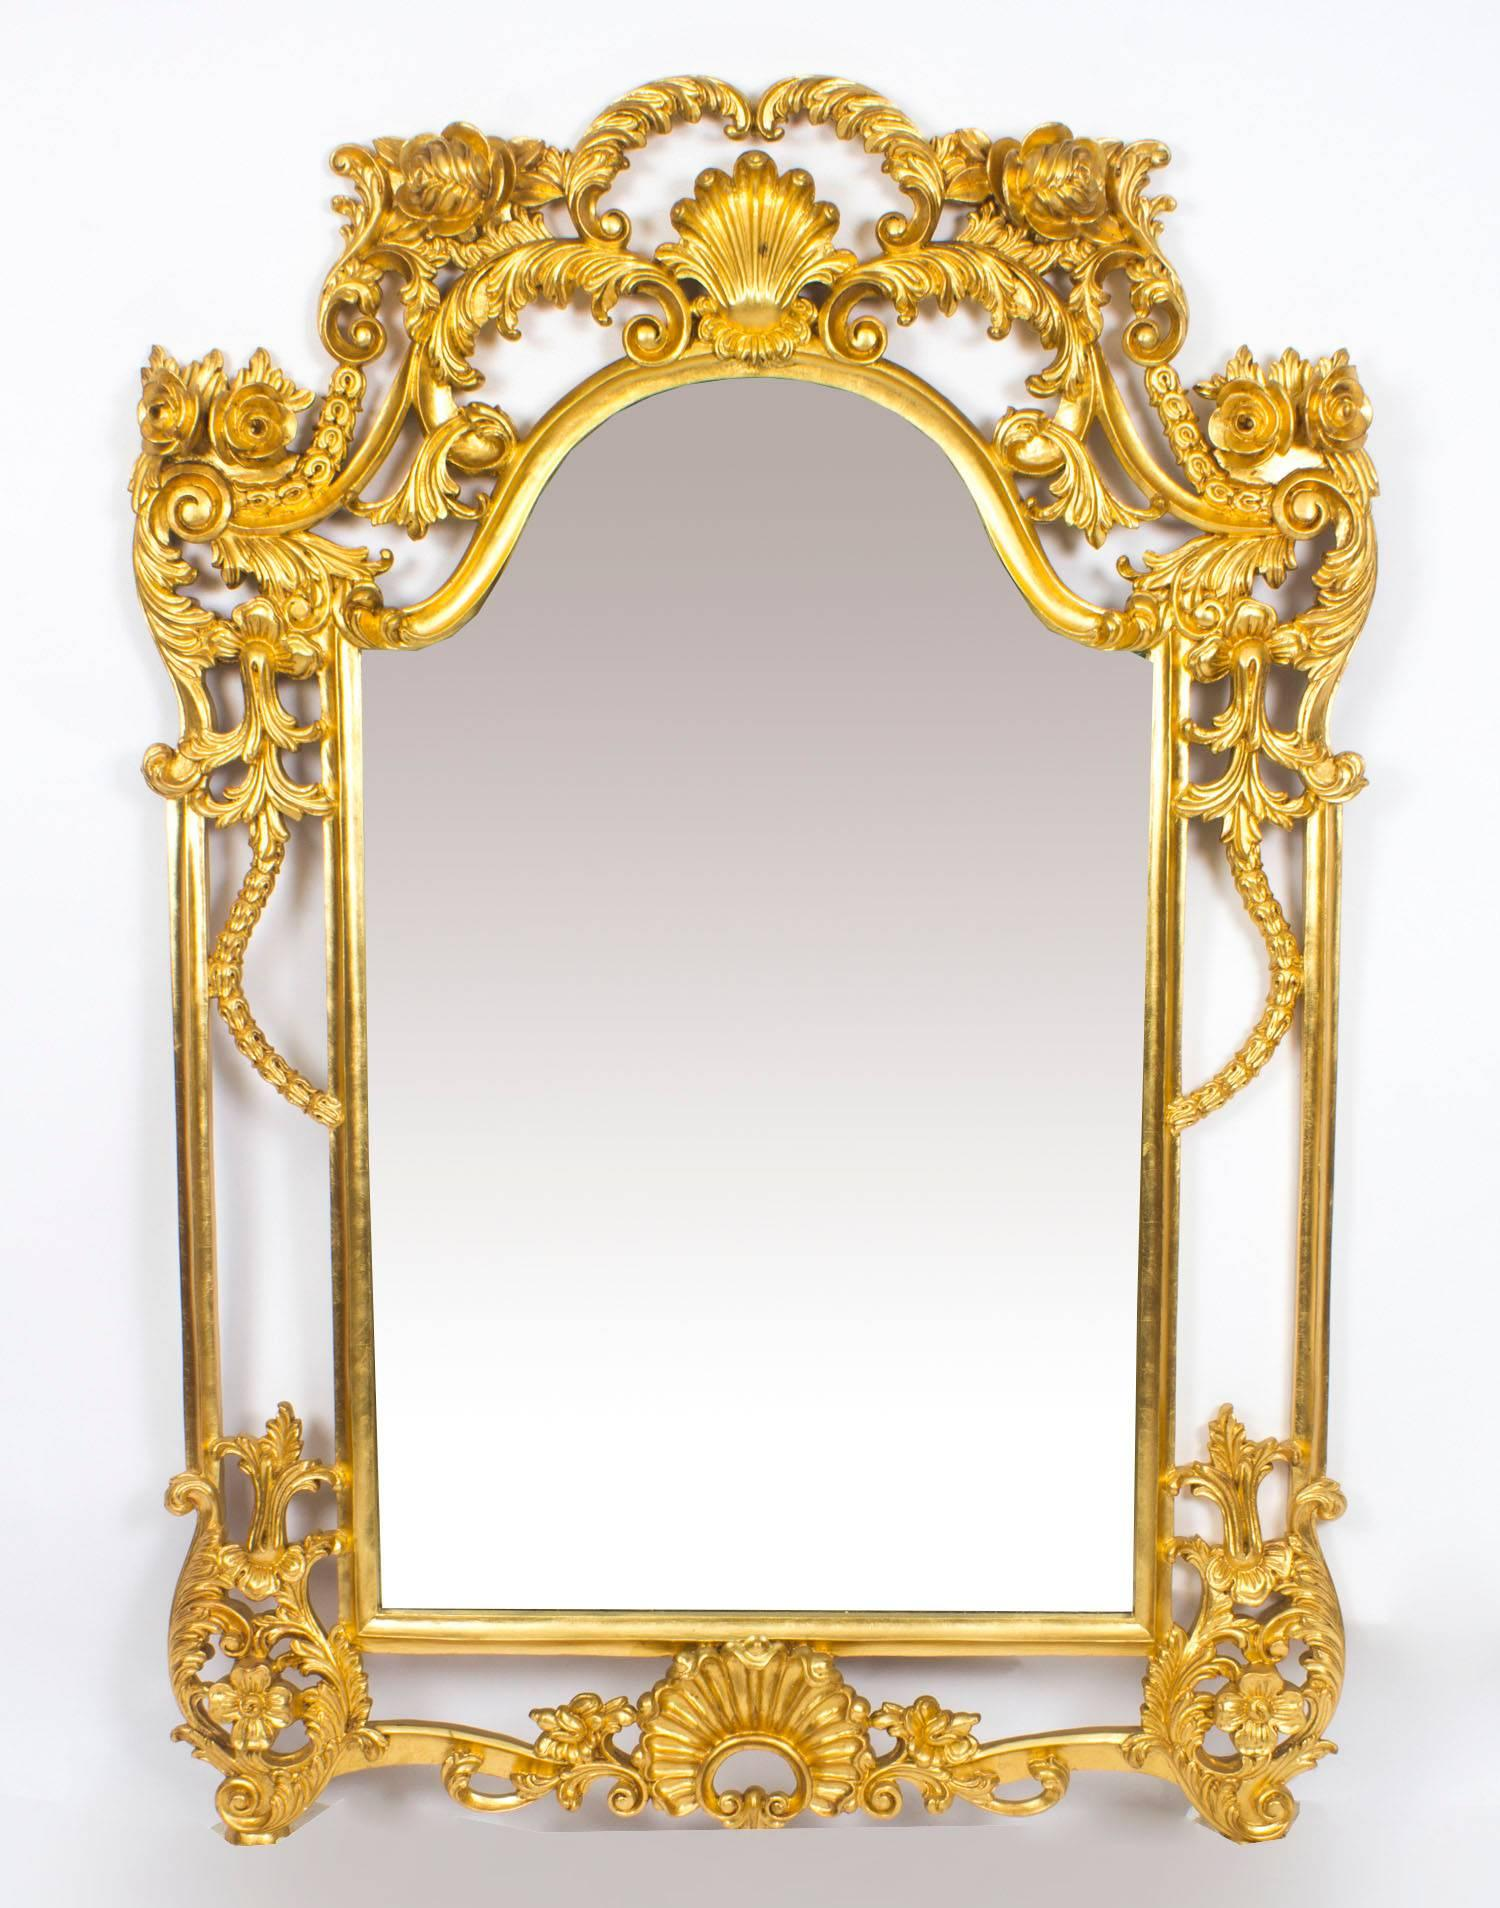 Decorative Mirror Beautiful Ornate Large Italian Gilded Decorative Mirror